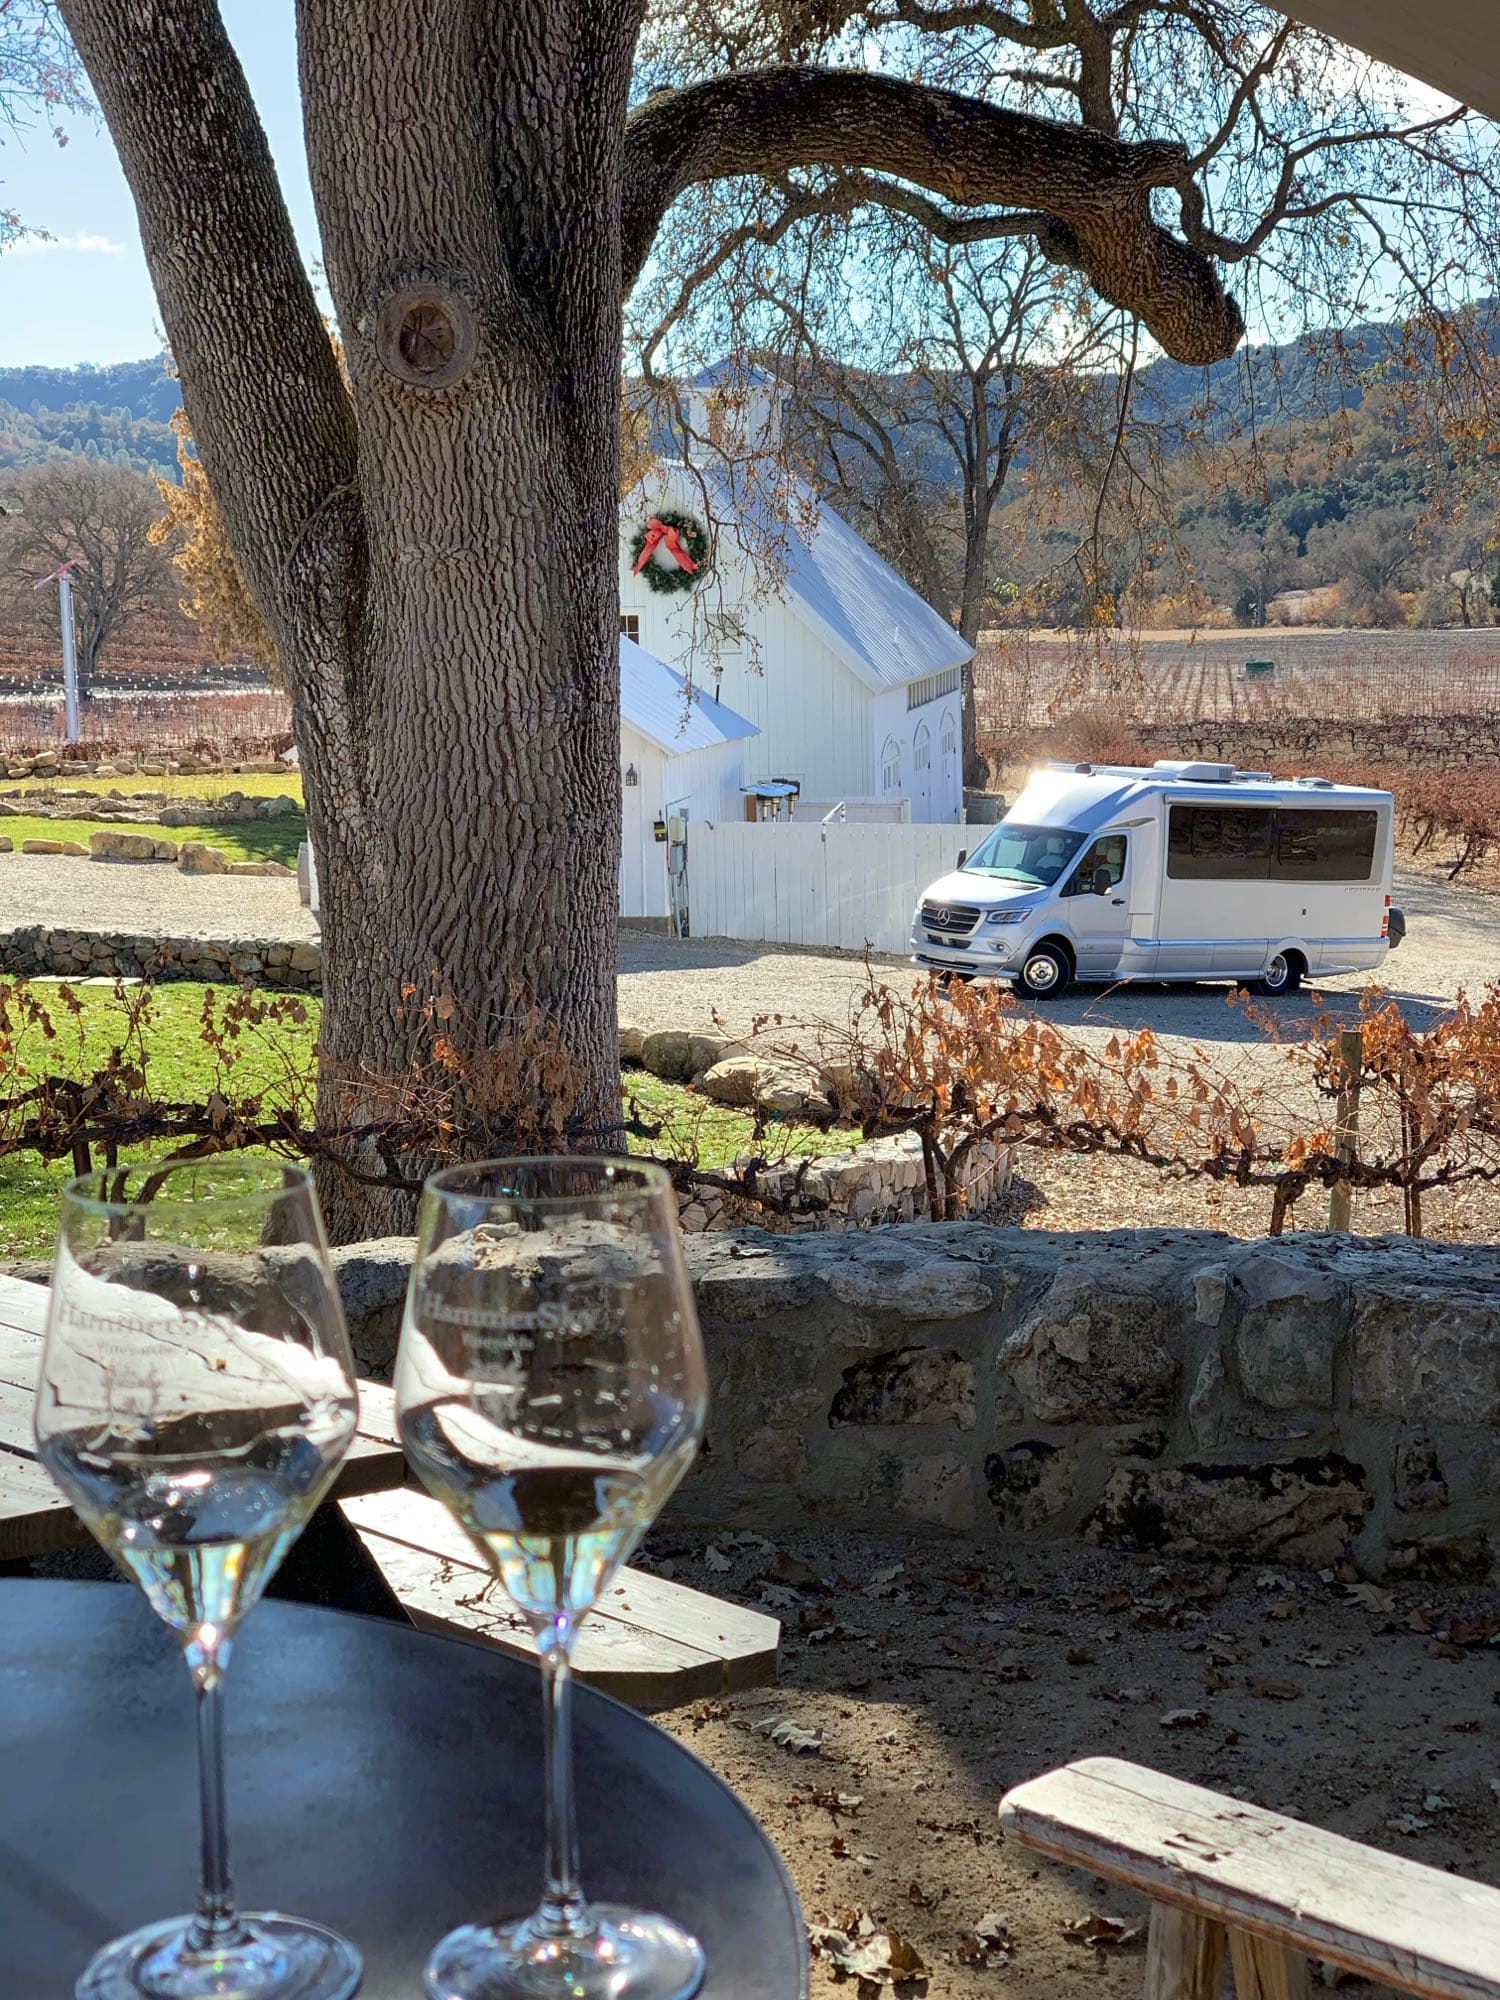 From Napa to Paso Robles California has many wine regions to visit and some allow overnight stays. check out HarvestHost. Airstream Atlas 2021